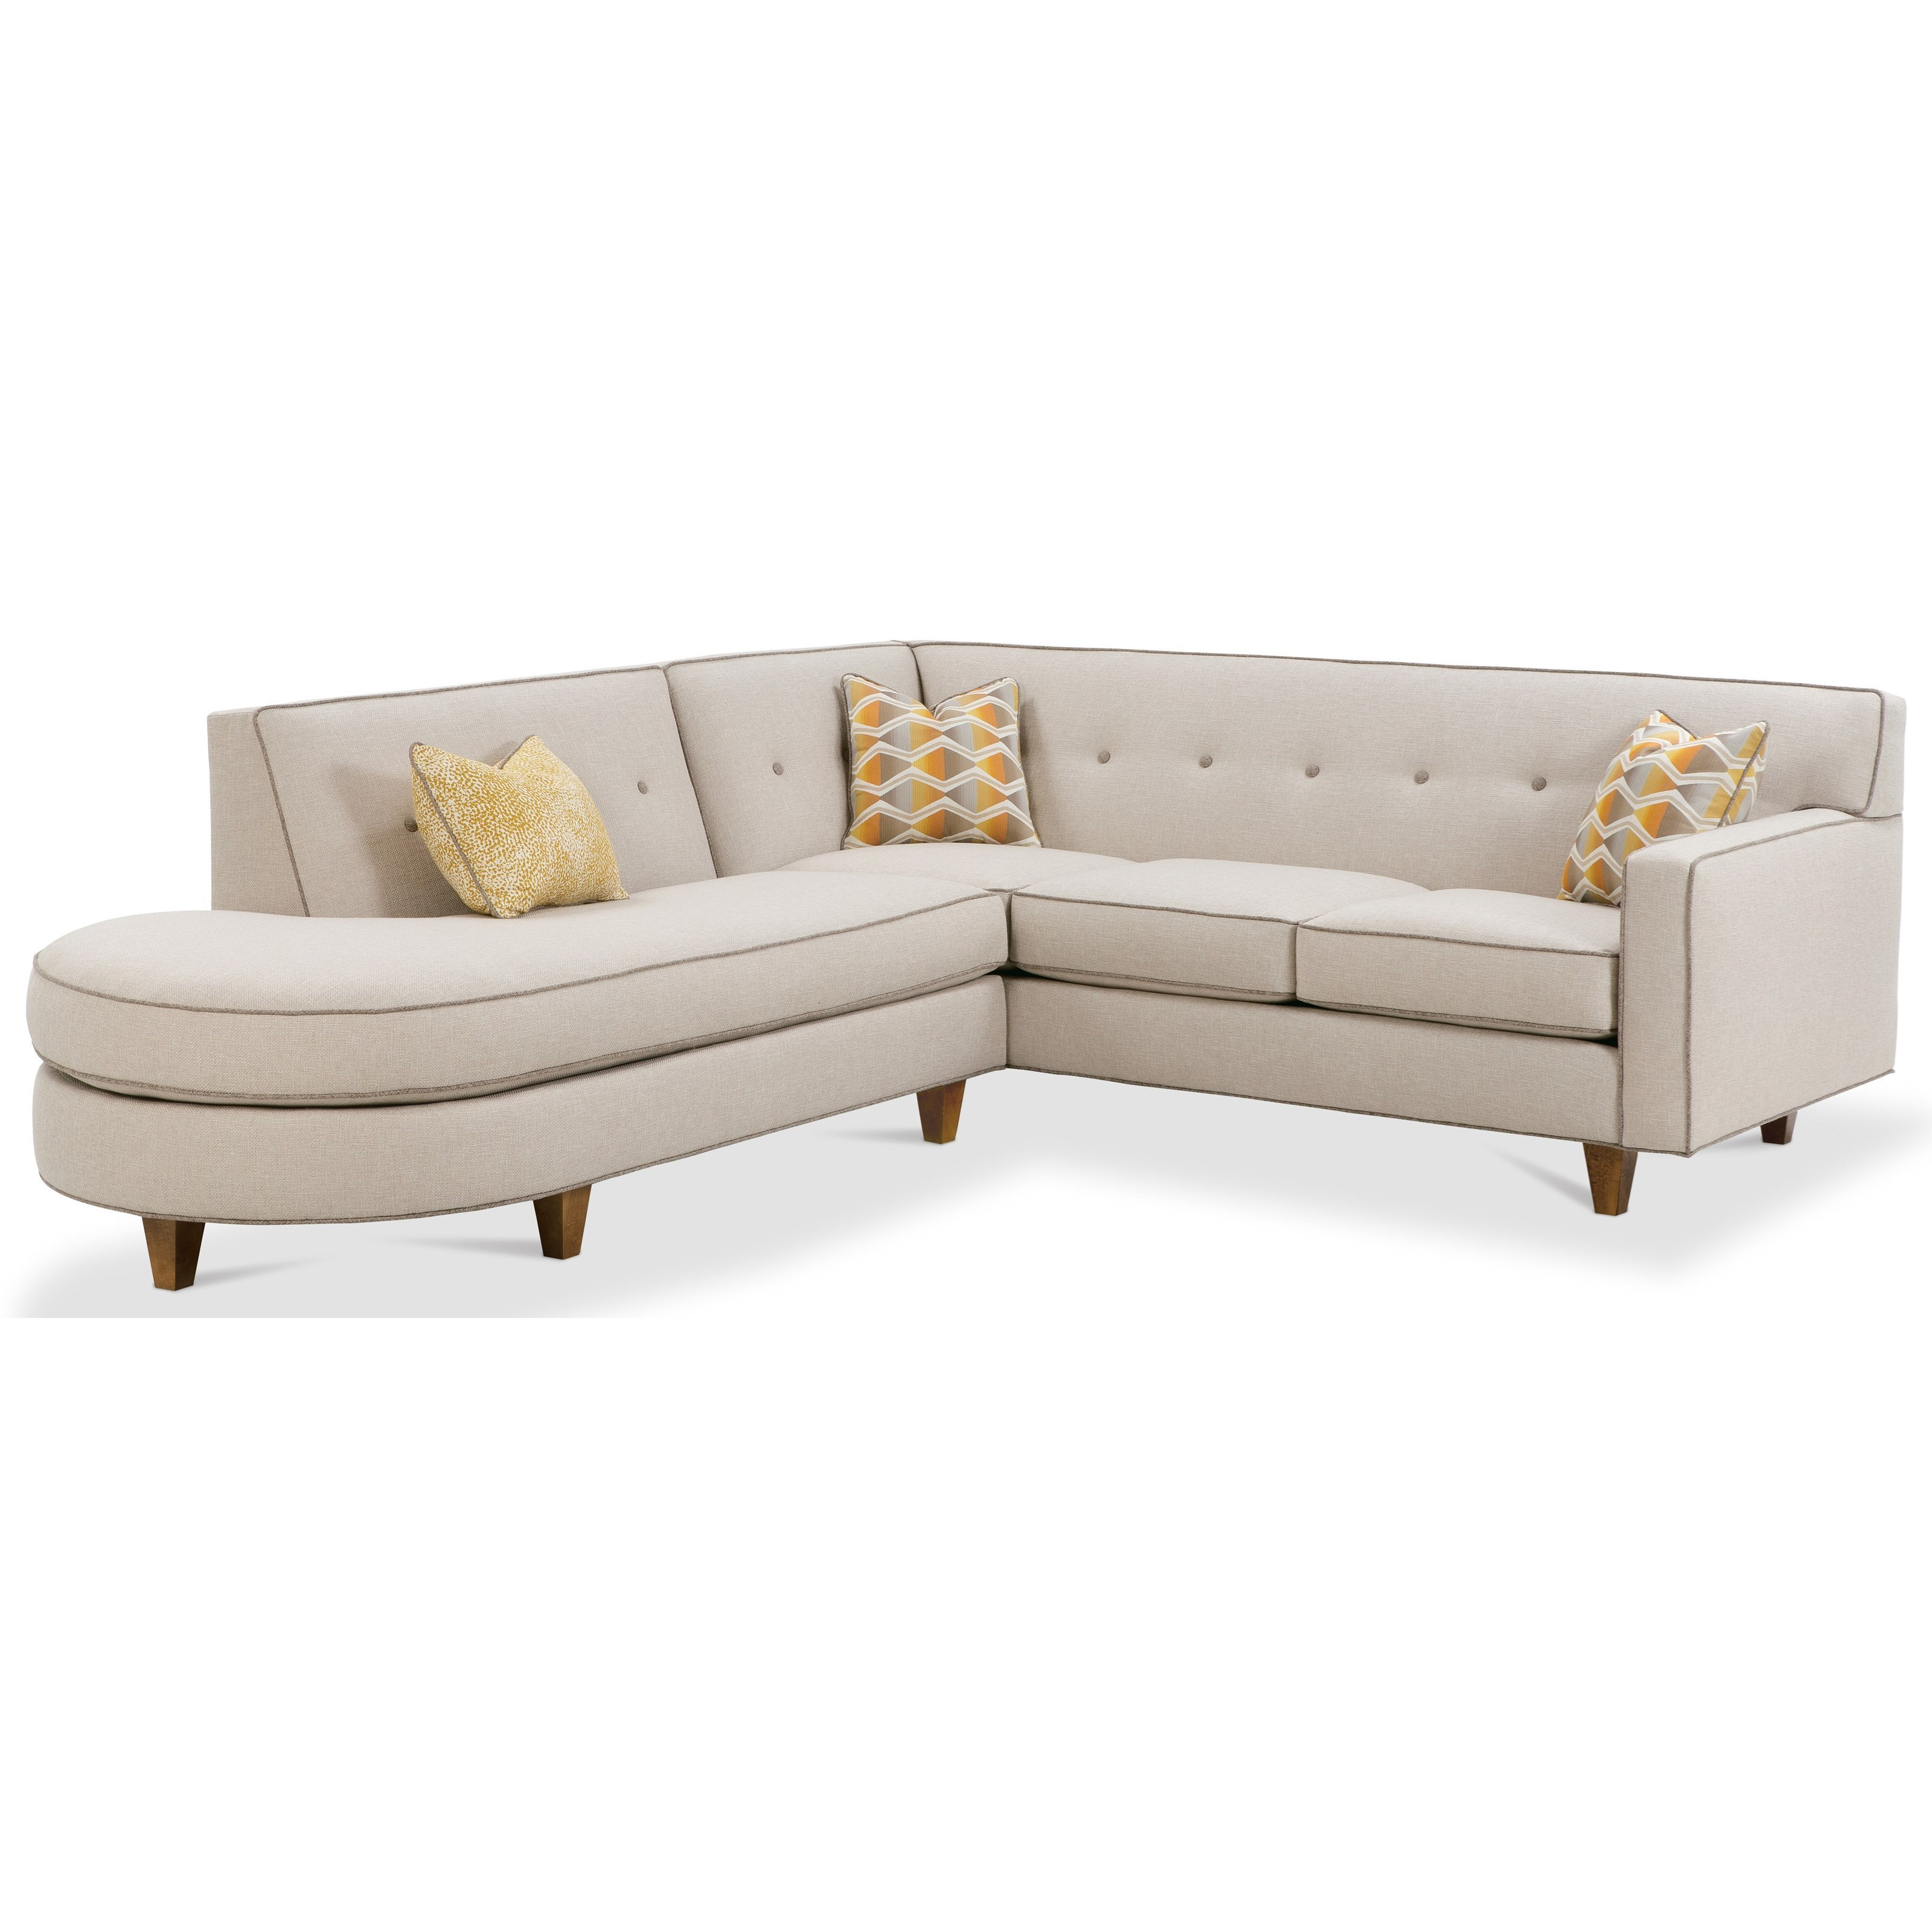 Rowe Dorset Contemporary 2 Piece Sectional Sofa With Tufted Back - Garden Furniture Clearance Company Dorset